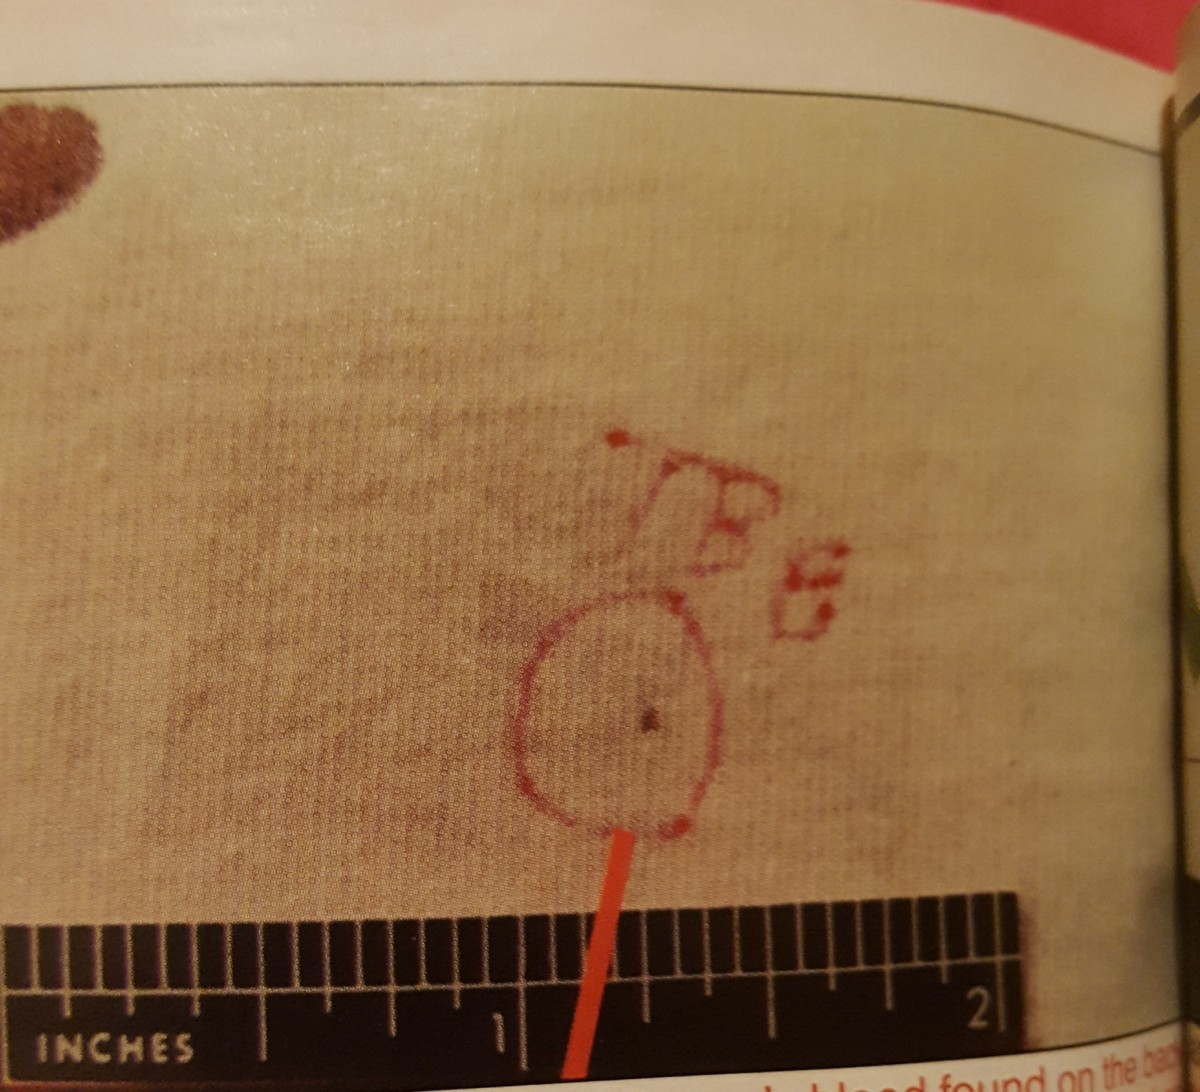 The circle indicates this is Devon's blood on the back of Darlie's night shirt. This is the totality of Devon's blood on the back of the shirt. It's not spatter, a splash, or even a drop. It is a minute, pinprick DOT. It proves nothing.